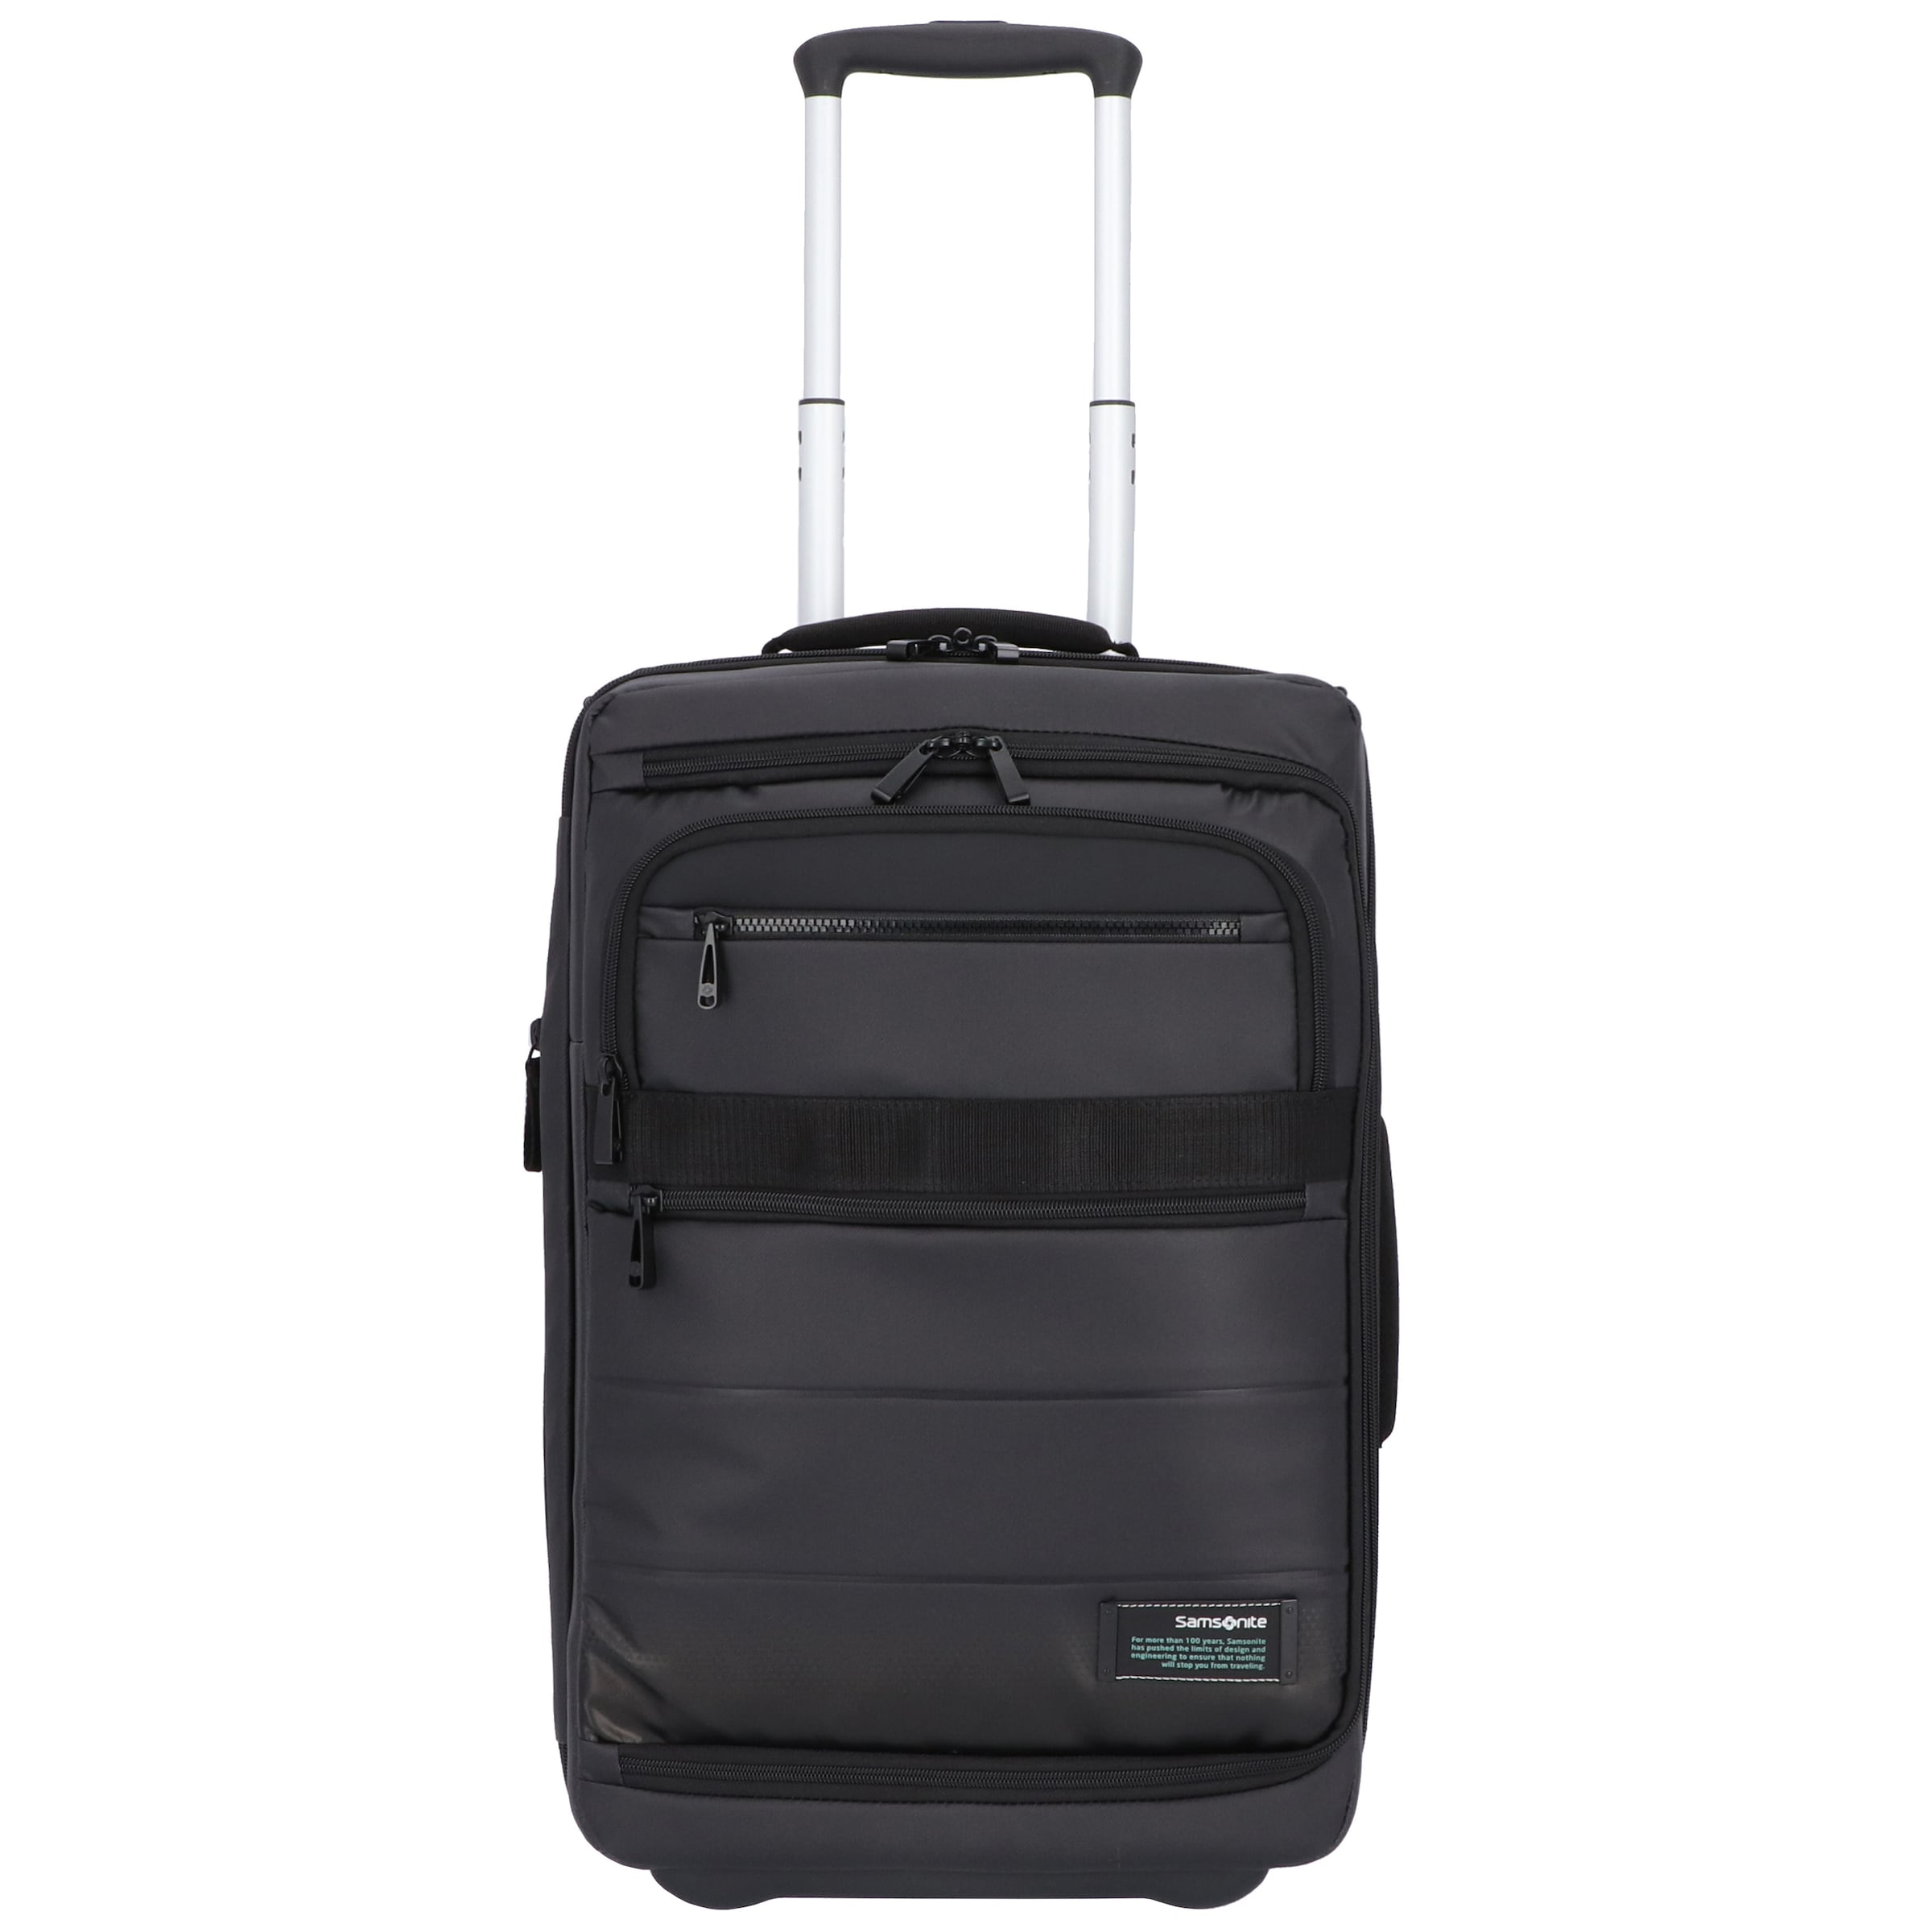 2 Samsonite Cm 0 Mobile Laptopfach Kabinentrolley In rollen Rot 55 Office Cityvibe 2 WI29YDEH